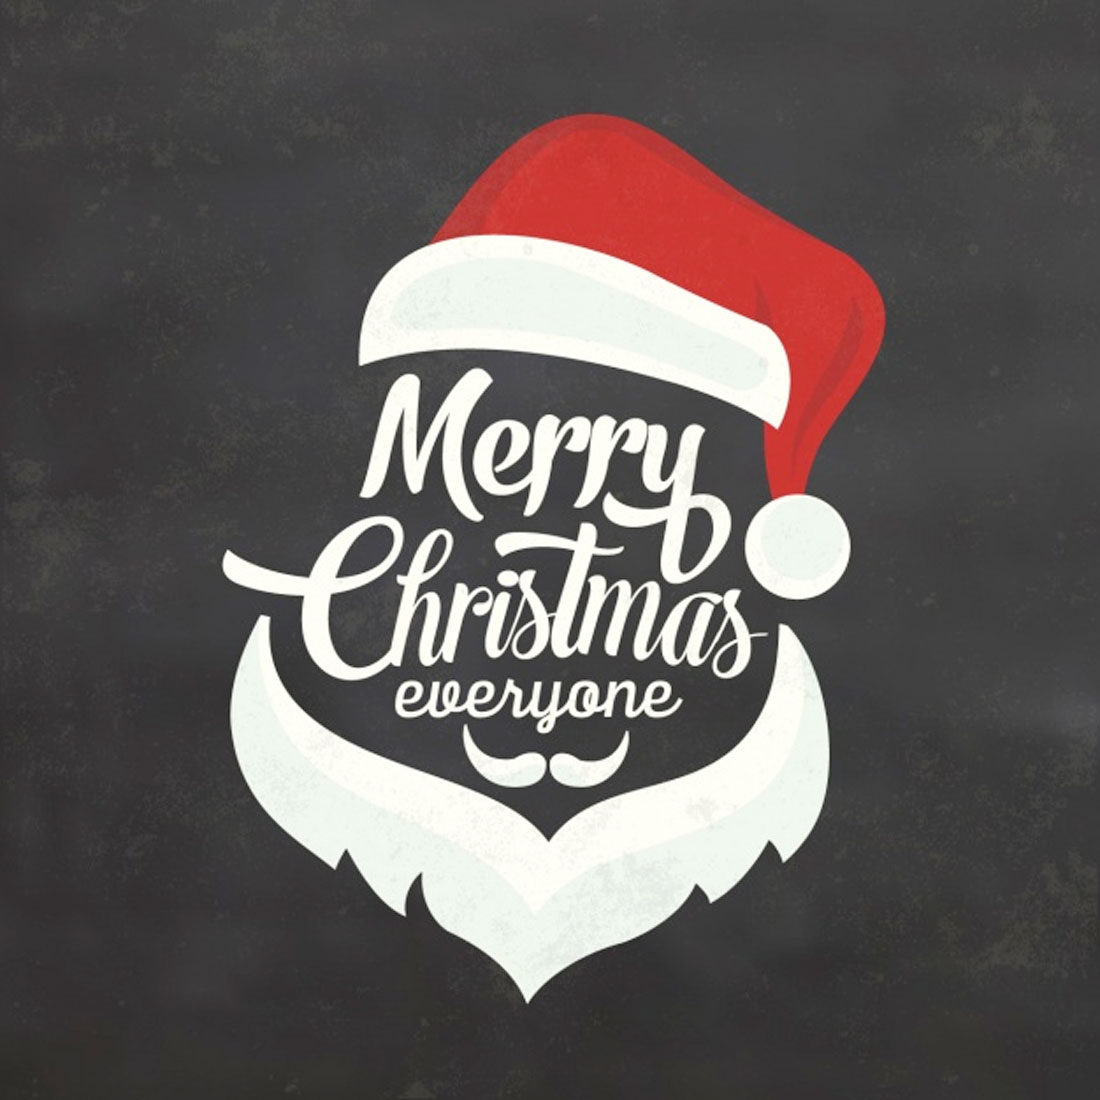 christmas-type Christmas Graphic Design: 5 Tips for Classy Festive Design design tips